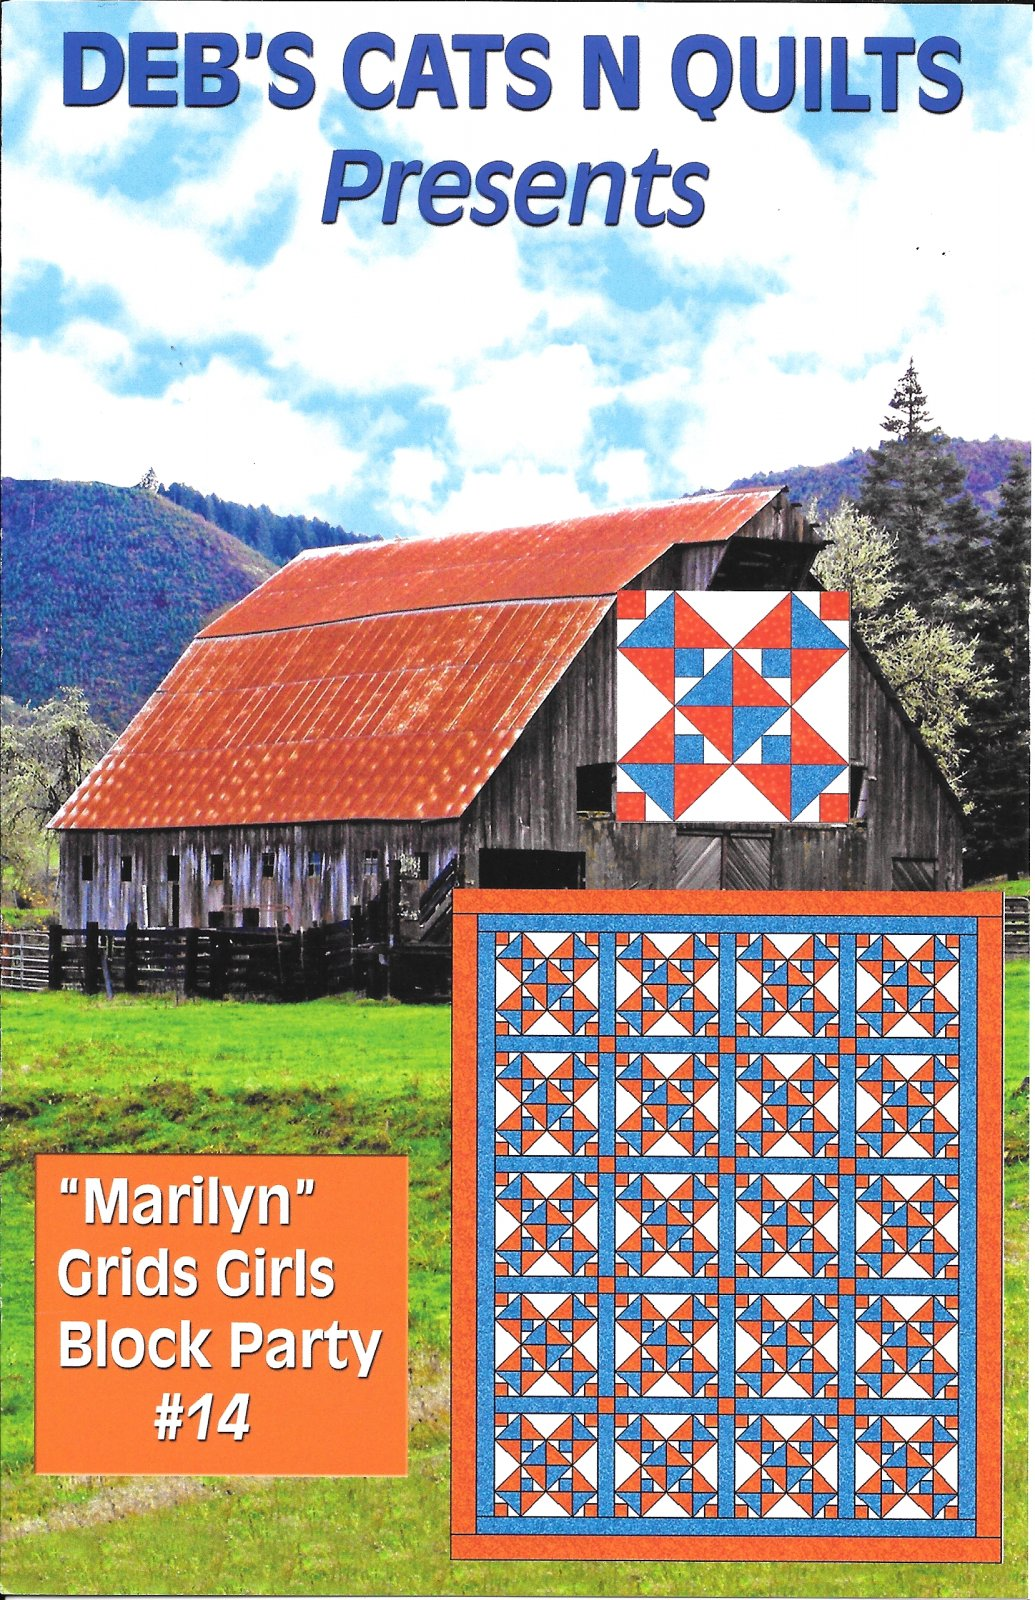 Grids Girls Block Party # 14- Marilyn